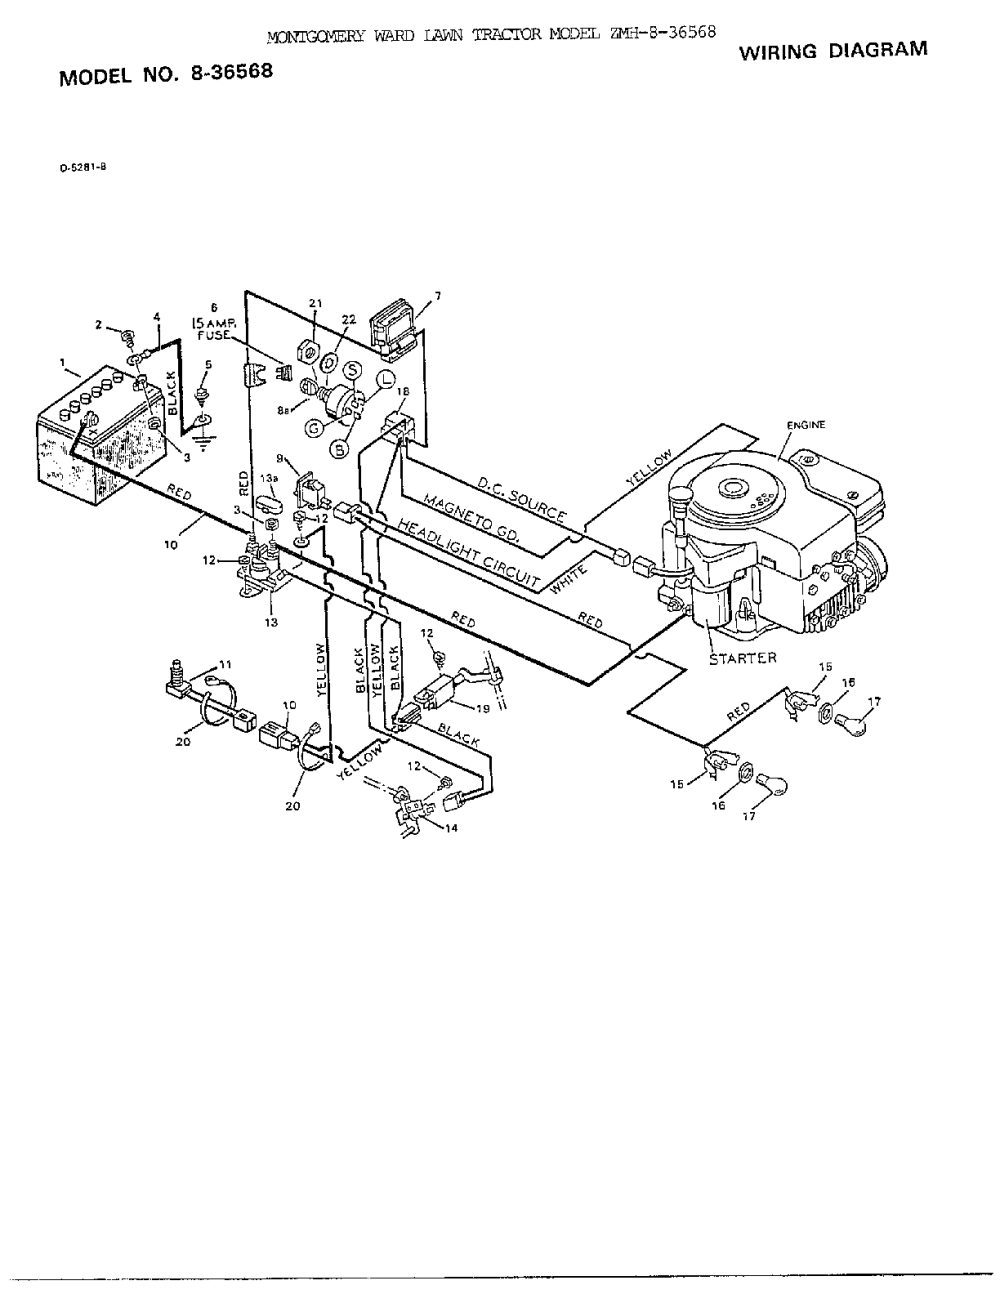 medium resolution of  sears wiring diagrams wiring diagram on wiring harness for simplicity lawn mower wiring harness